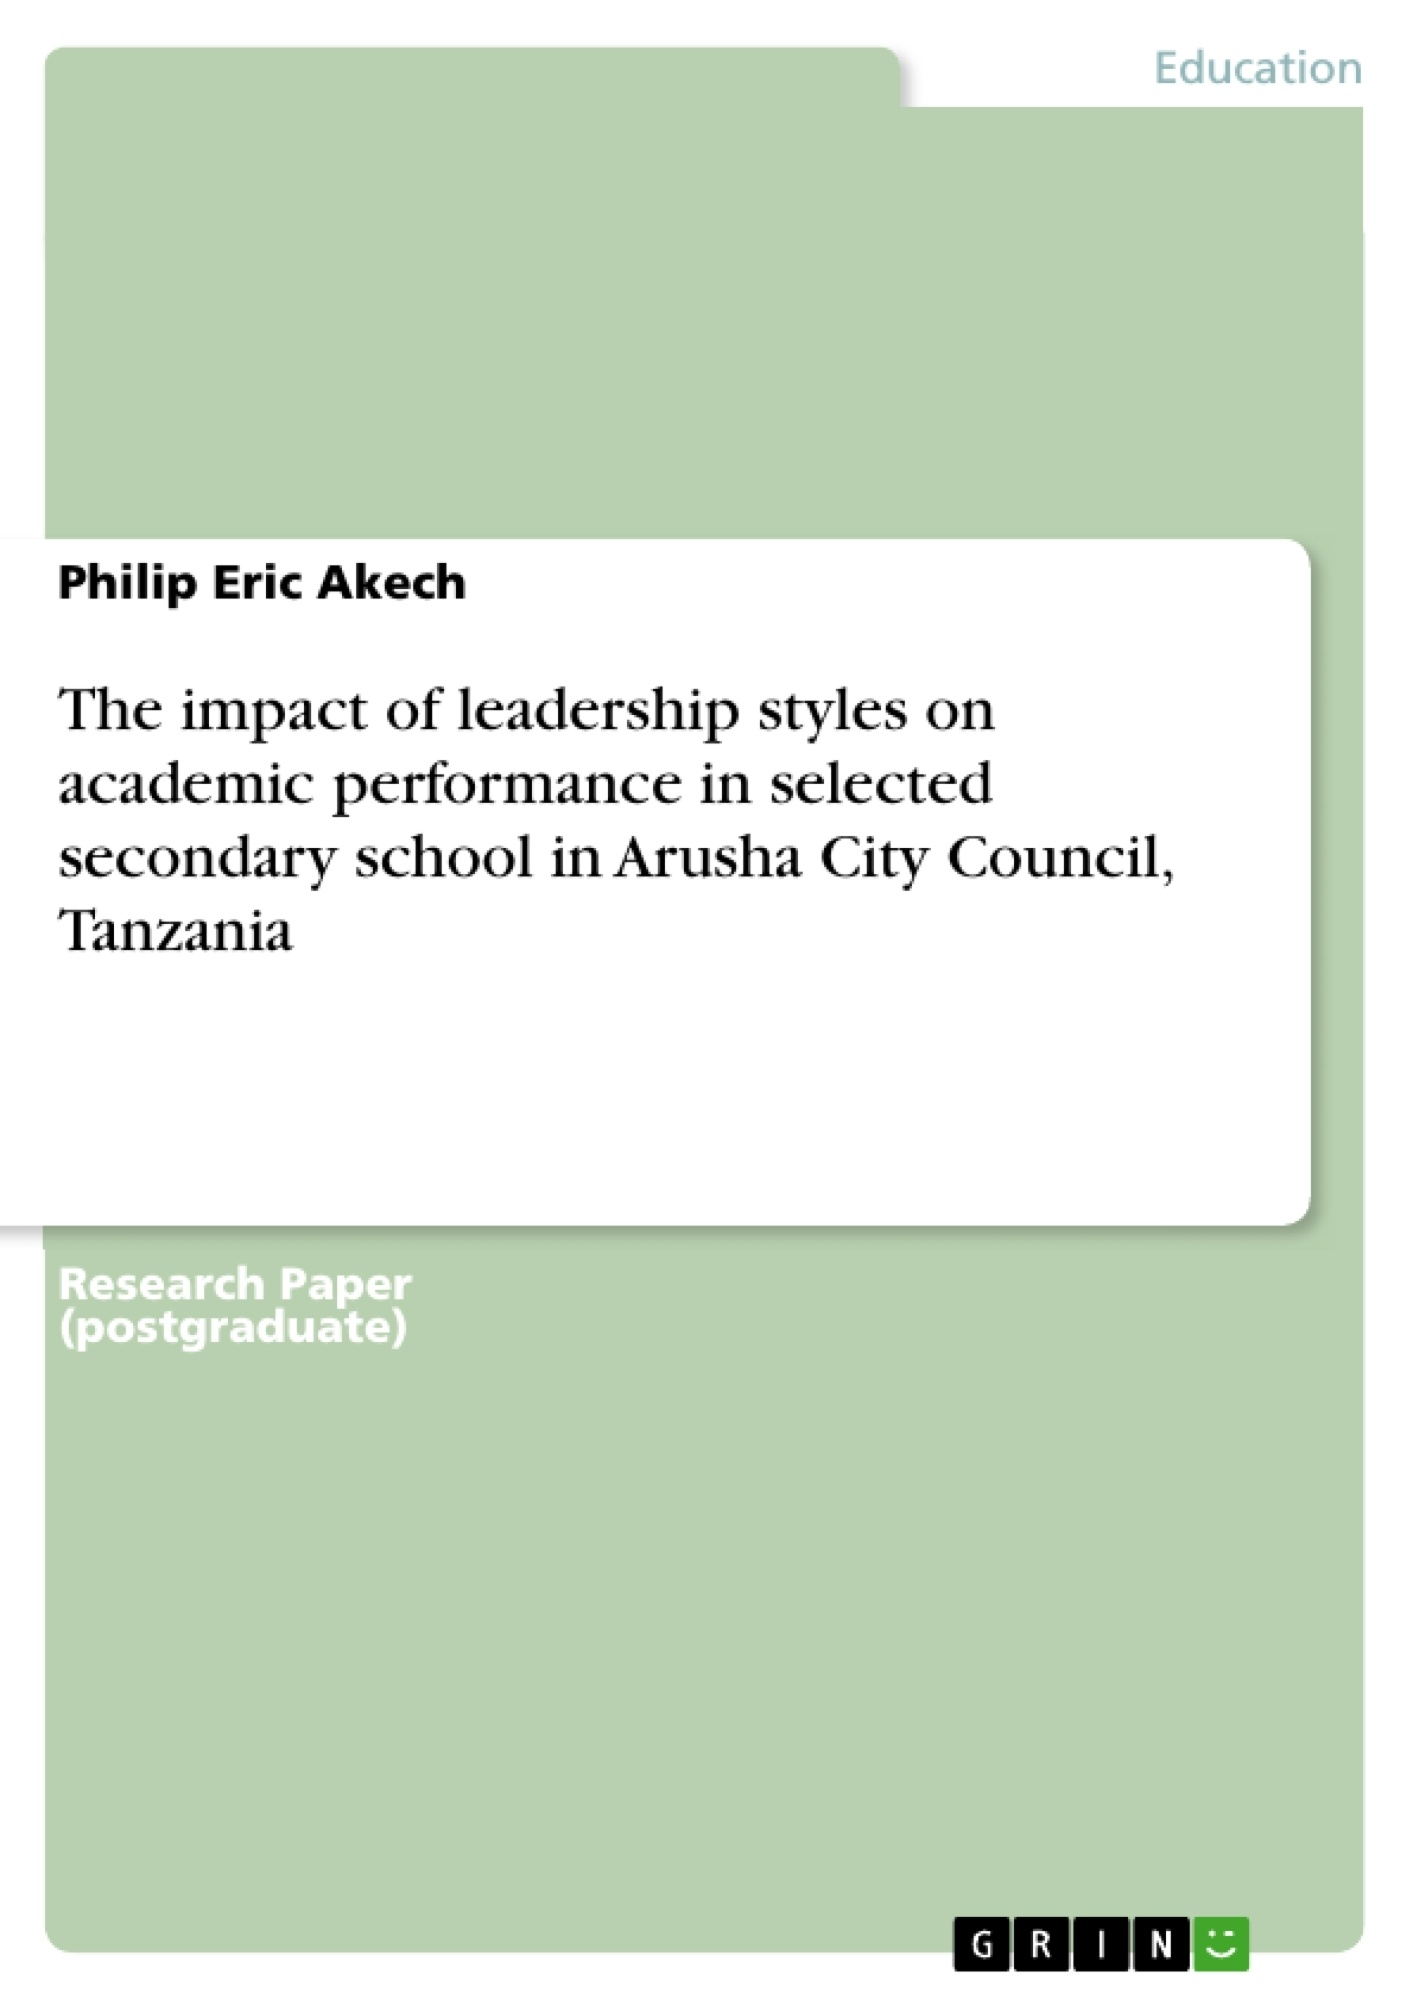 Title: The impact of leadership styles on academic performance in selected secondary school in Arusha City Council, Tanzania